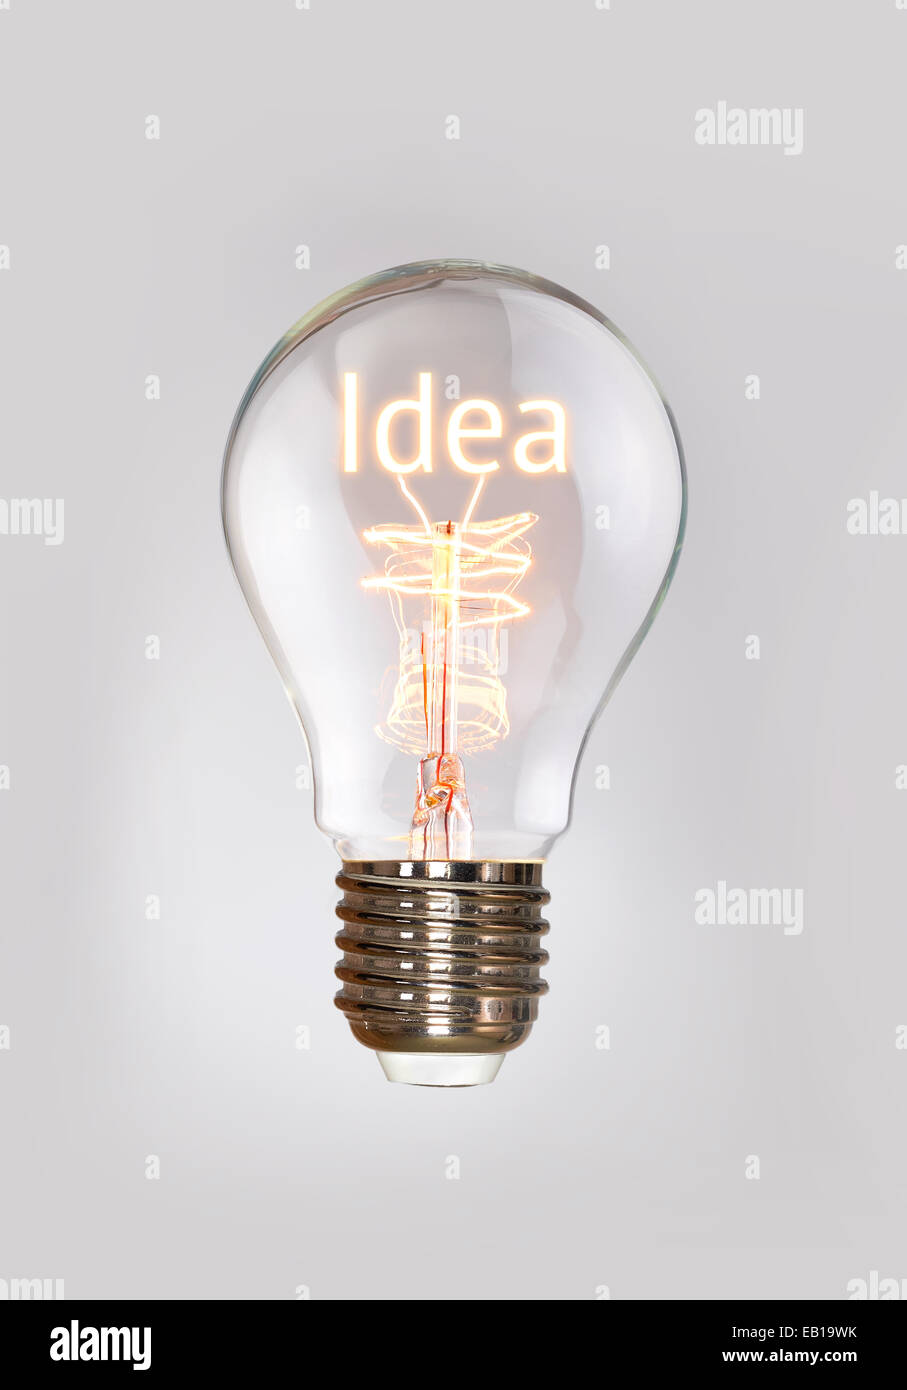 Ideas concept in a filament lightbulb. - Stock Image